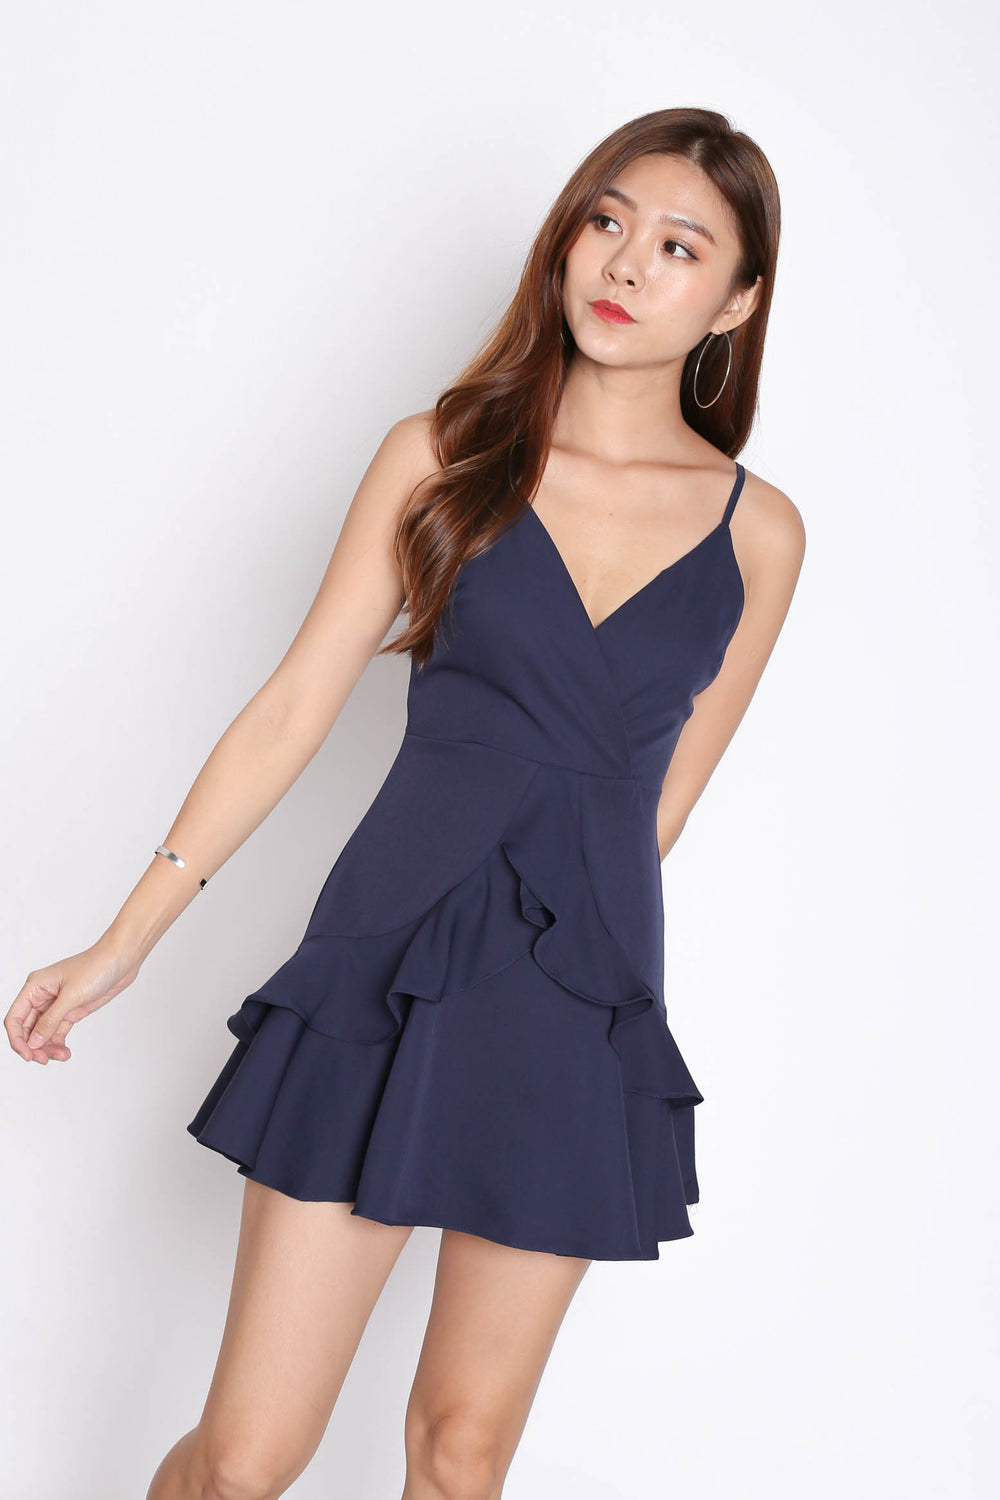 *TPZ* (PREMIUM) SAGE RUFFLES DRESS ROMPER IN NAVY